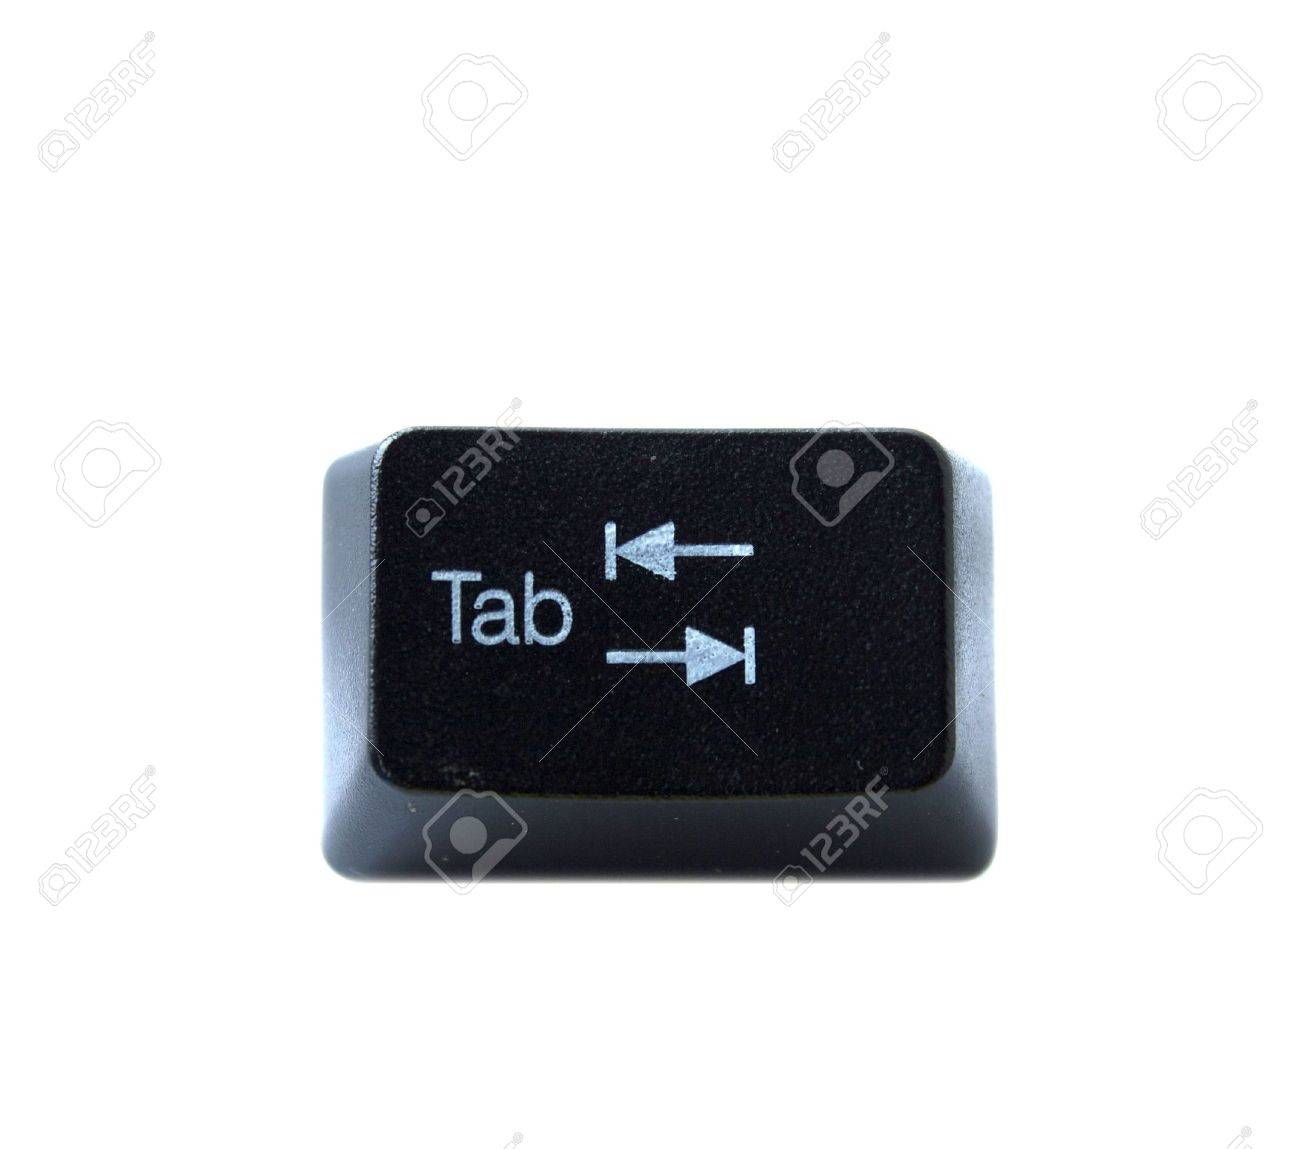 The Tab key from a black computer keyboard Stock Photo - 5766371